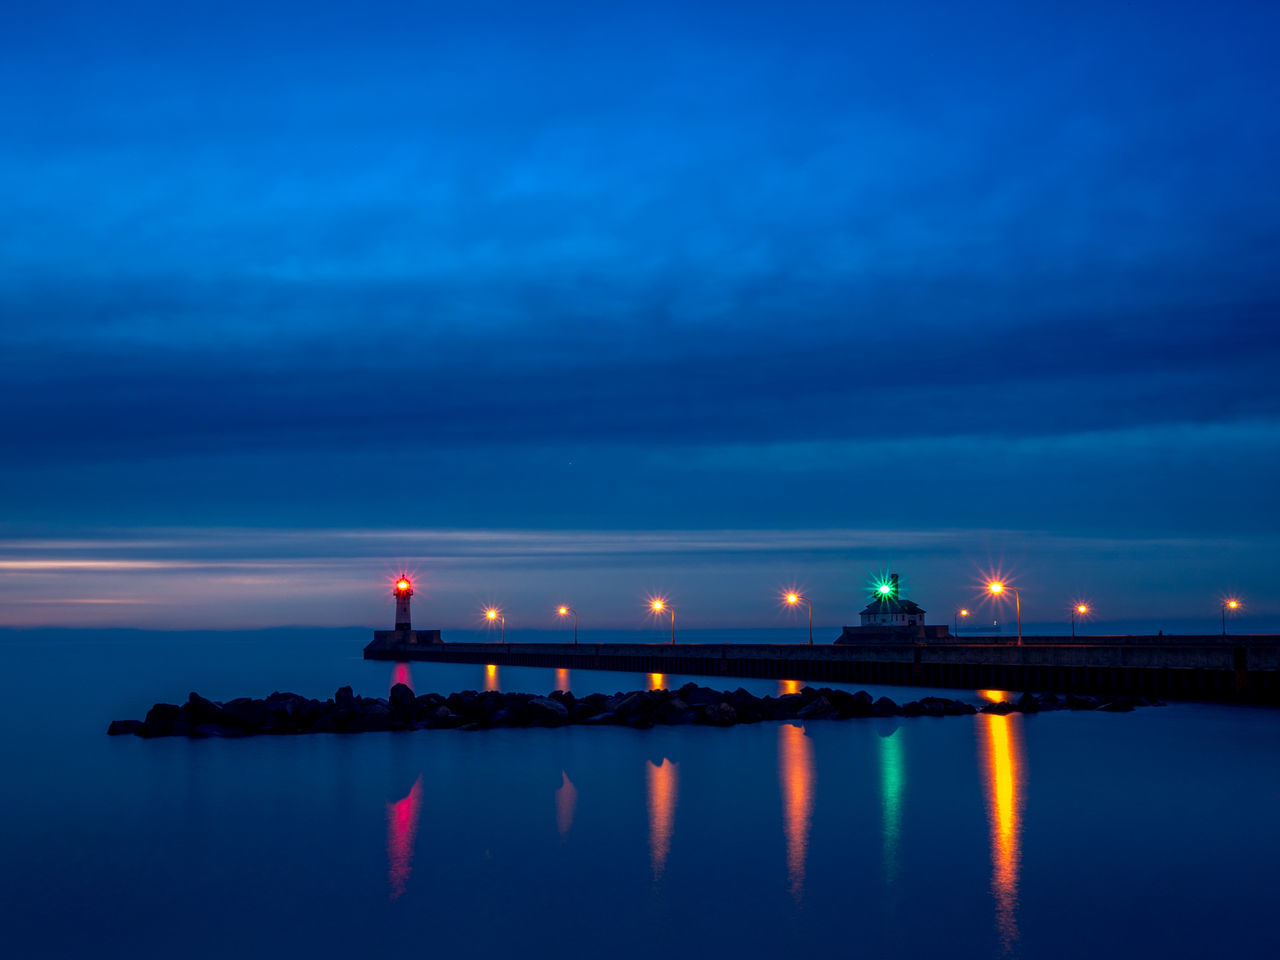 Architecture Beauty In Nature Blurred Blurred Background Bridge - Man Made Structure Building Exterior Built Structure City Connection Early Morning Illuminated Lighthouse Long Exposure Nature Night No People Outdoors Scenics Sea Sky Sunrise Transportation Travel Destinations Water Waterfront